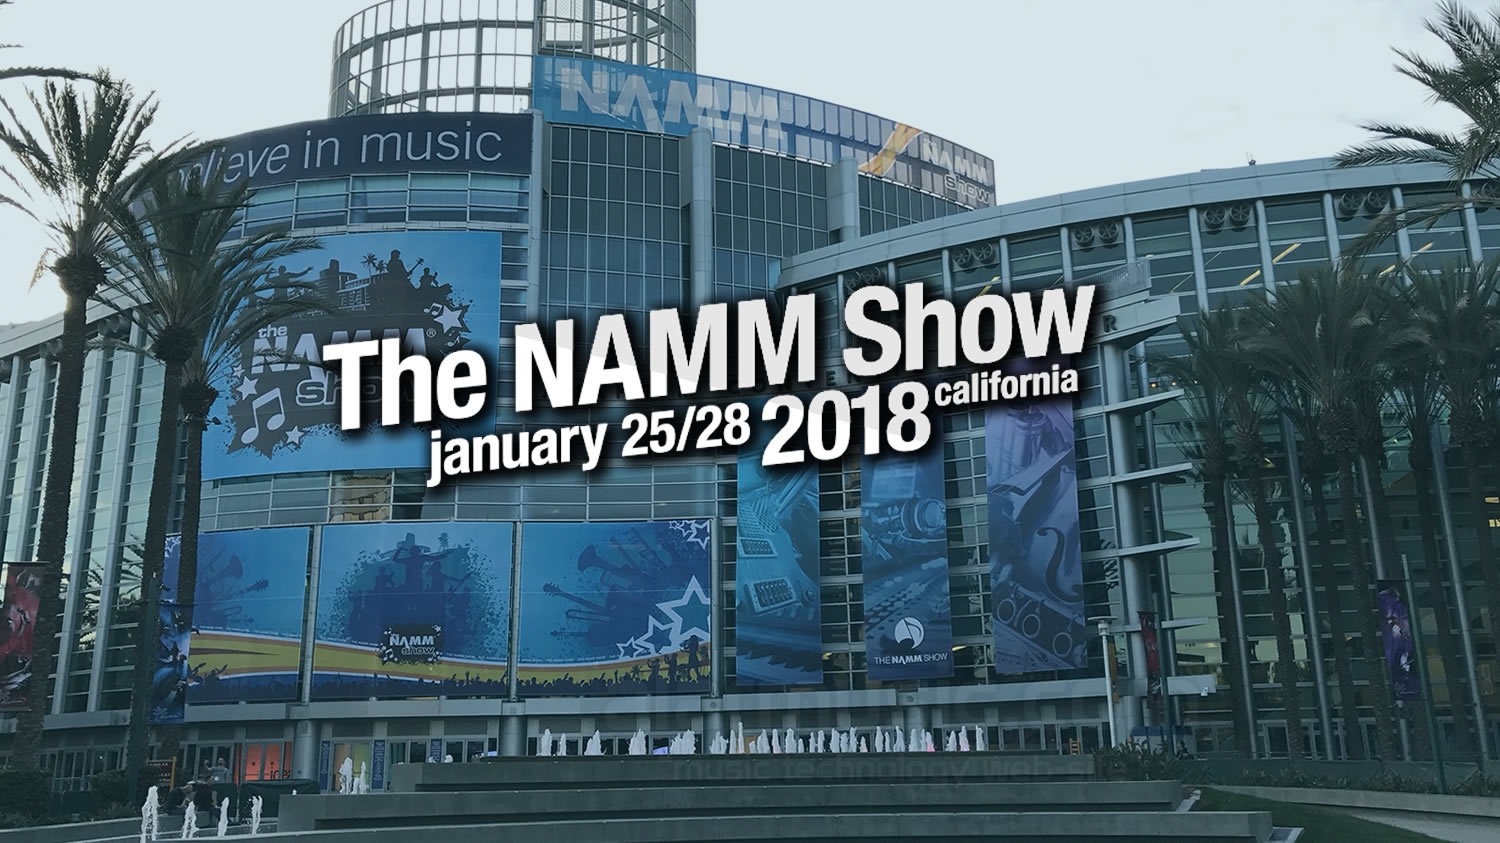 SN3 Innovations will be exhibiting at The NAMM Show in Anaheim, CA (Jan 25th - Jan 28th).  If you are planning on attending stop by and visit us!  Booth # 10939  https://www.namm.org/thenammshow/2018